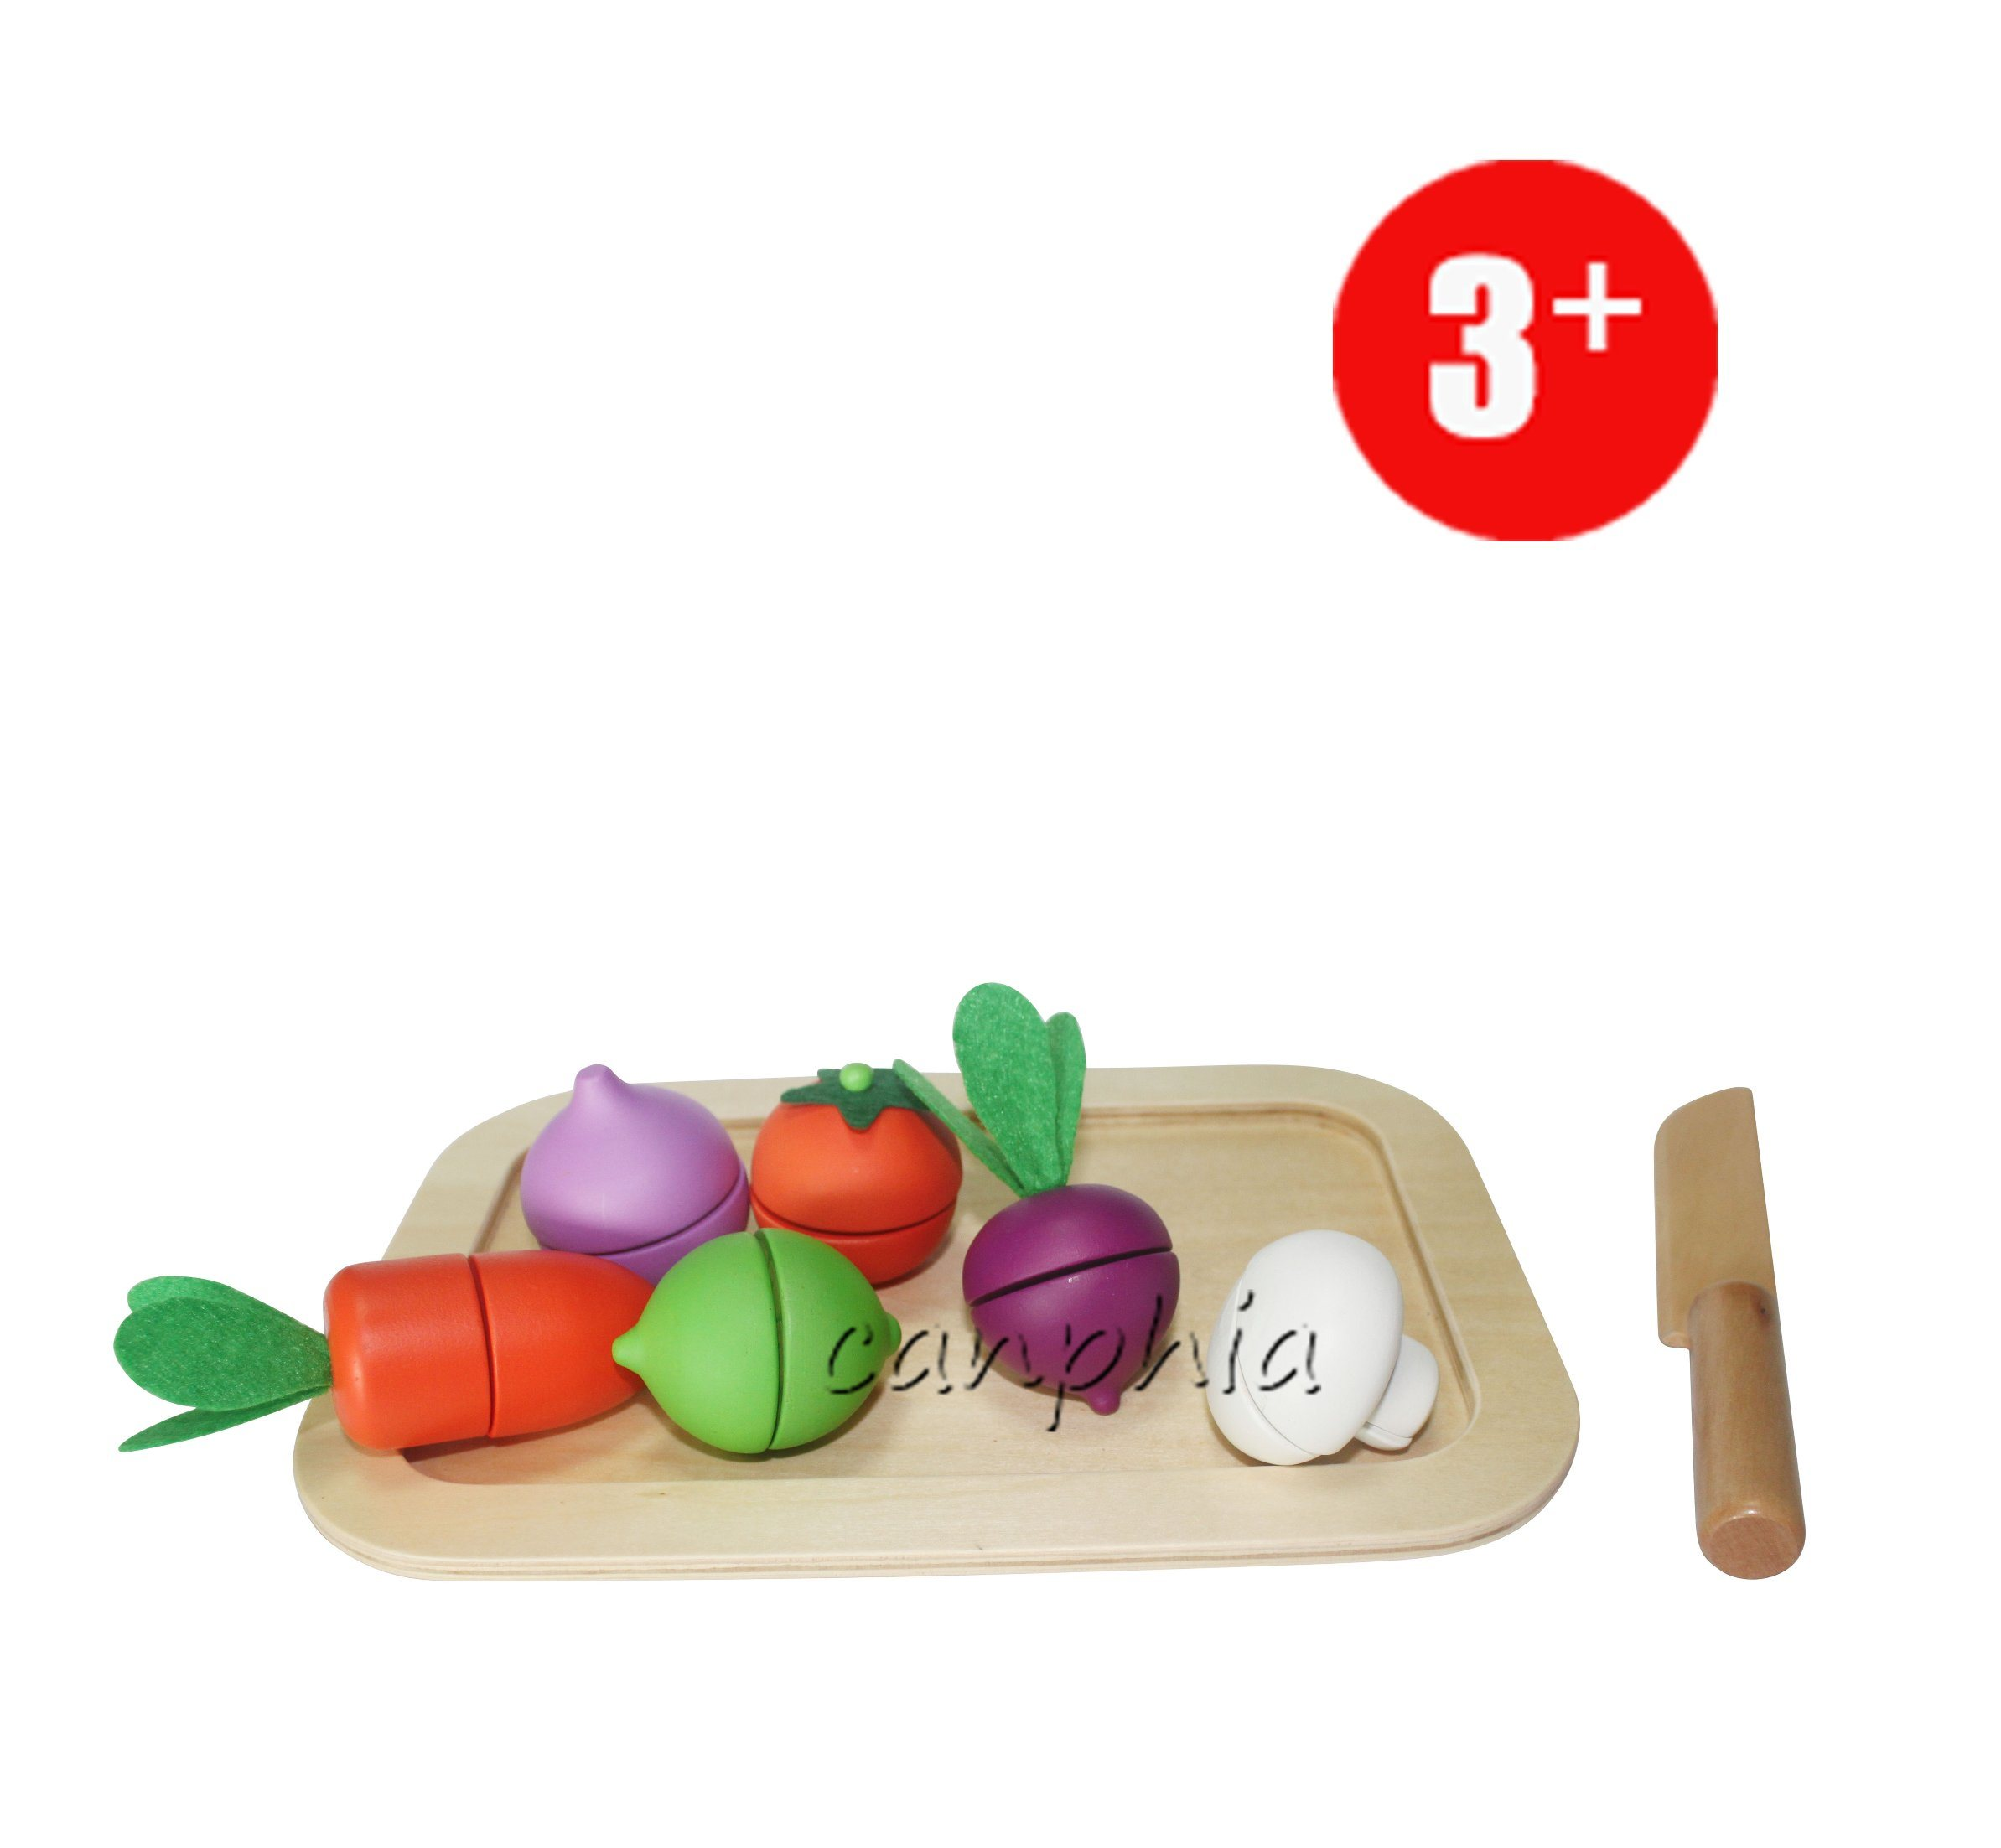 Wooden Cutting Toy Food for Kids, Role Play Toy Food for Children, Happy Playfully Cutting Wood Food Toy Ca04019